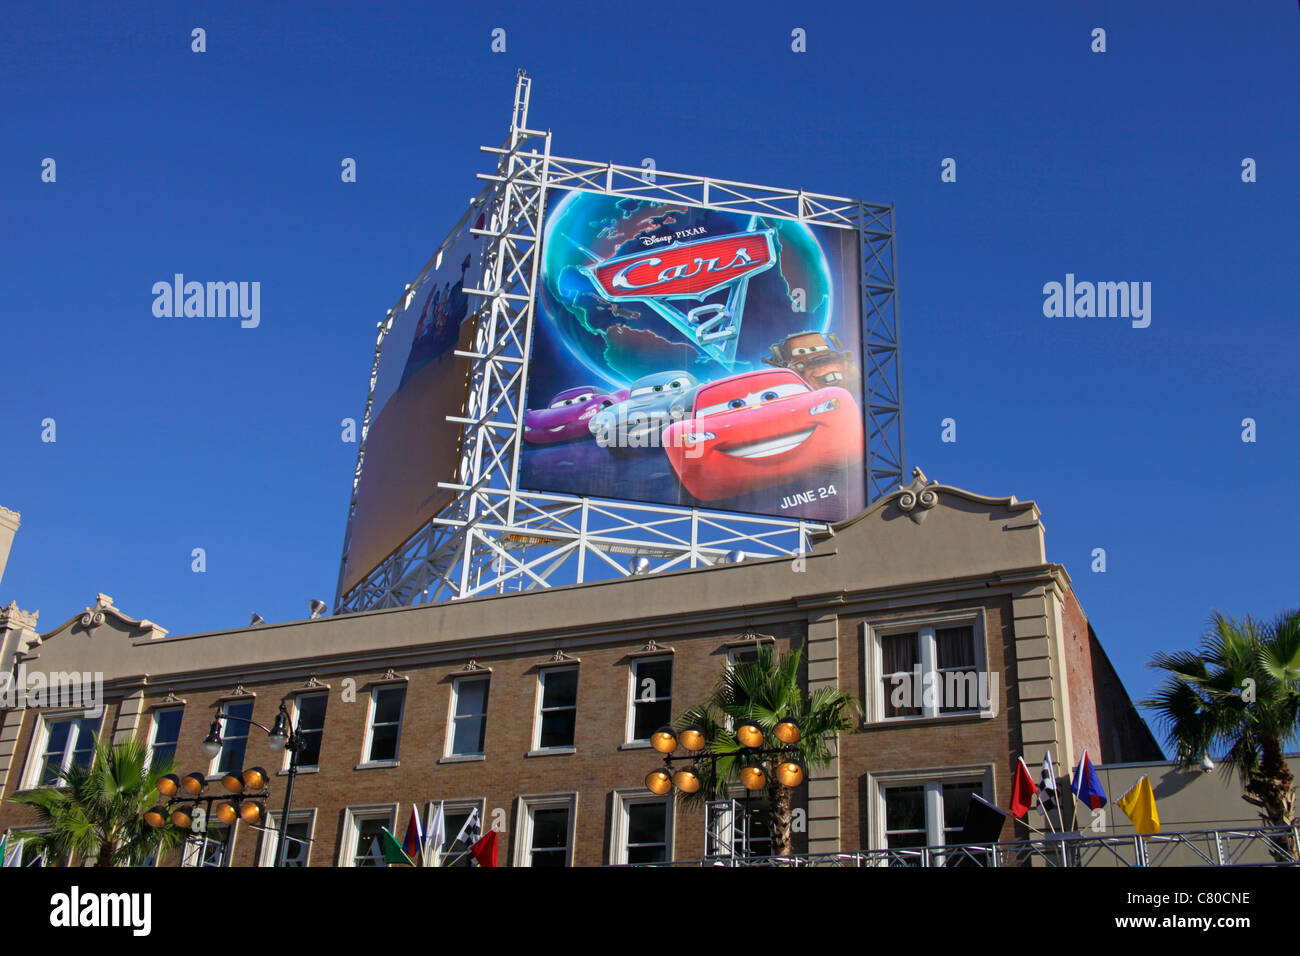 A billboard of Cars2 Hollywood Boulevard Los Angeles California USA - Stock Image